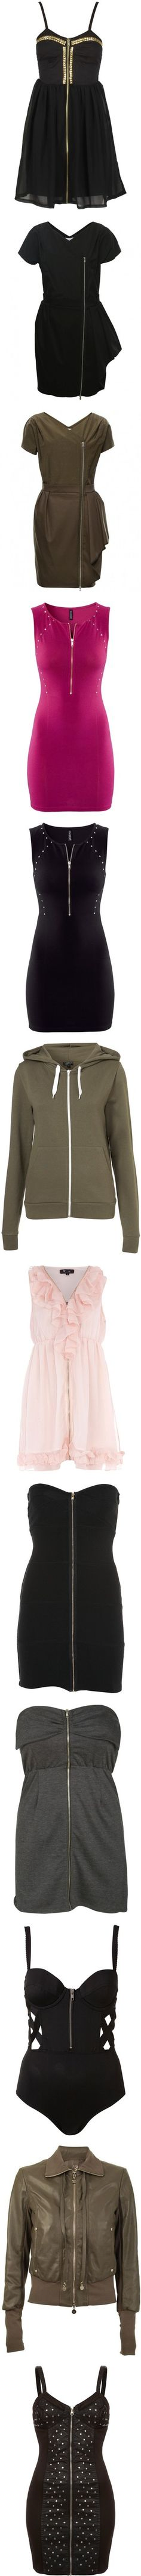 """zipped 6"" by melodynov3rd ❤ liked on Polyvore"